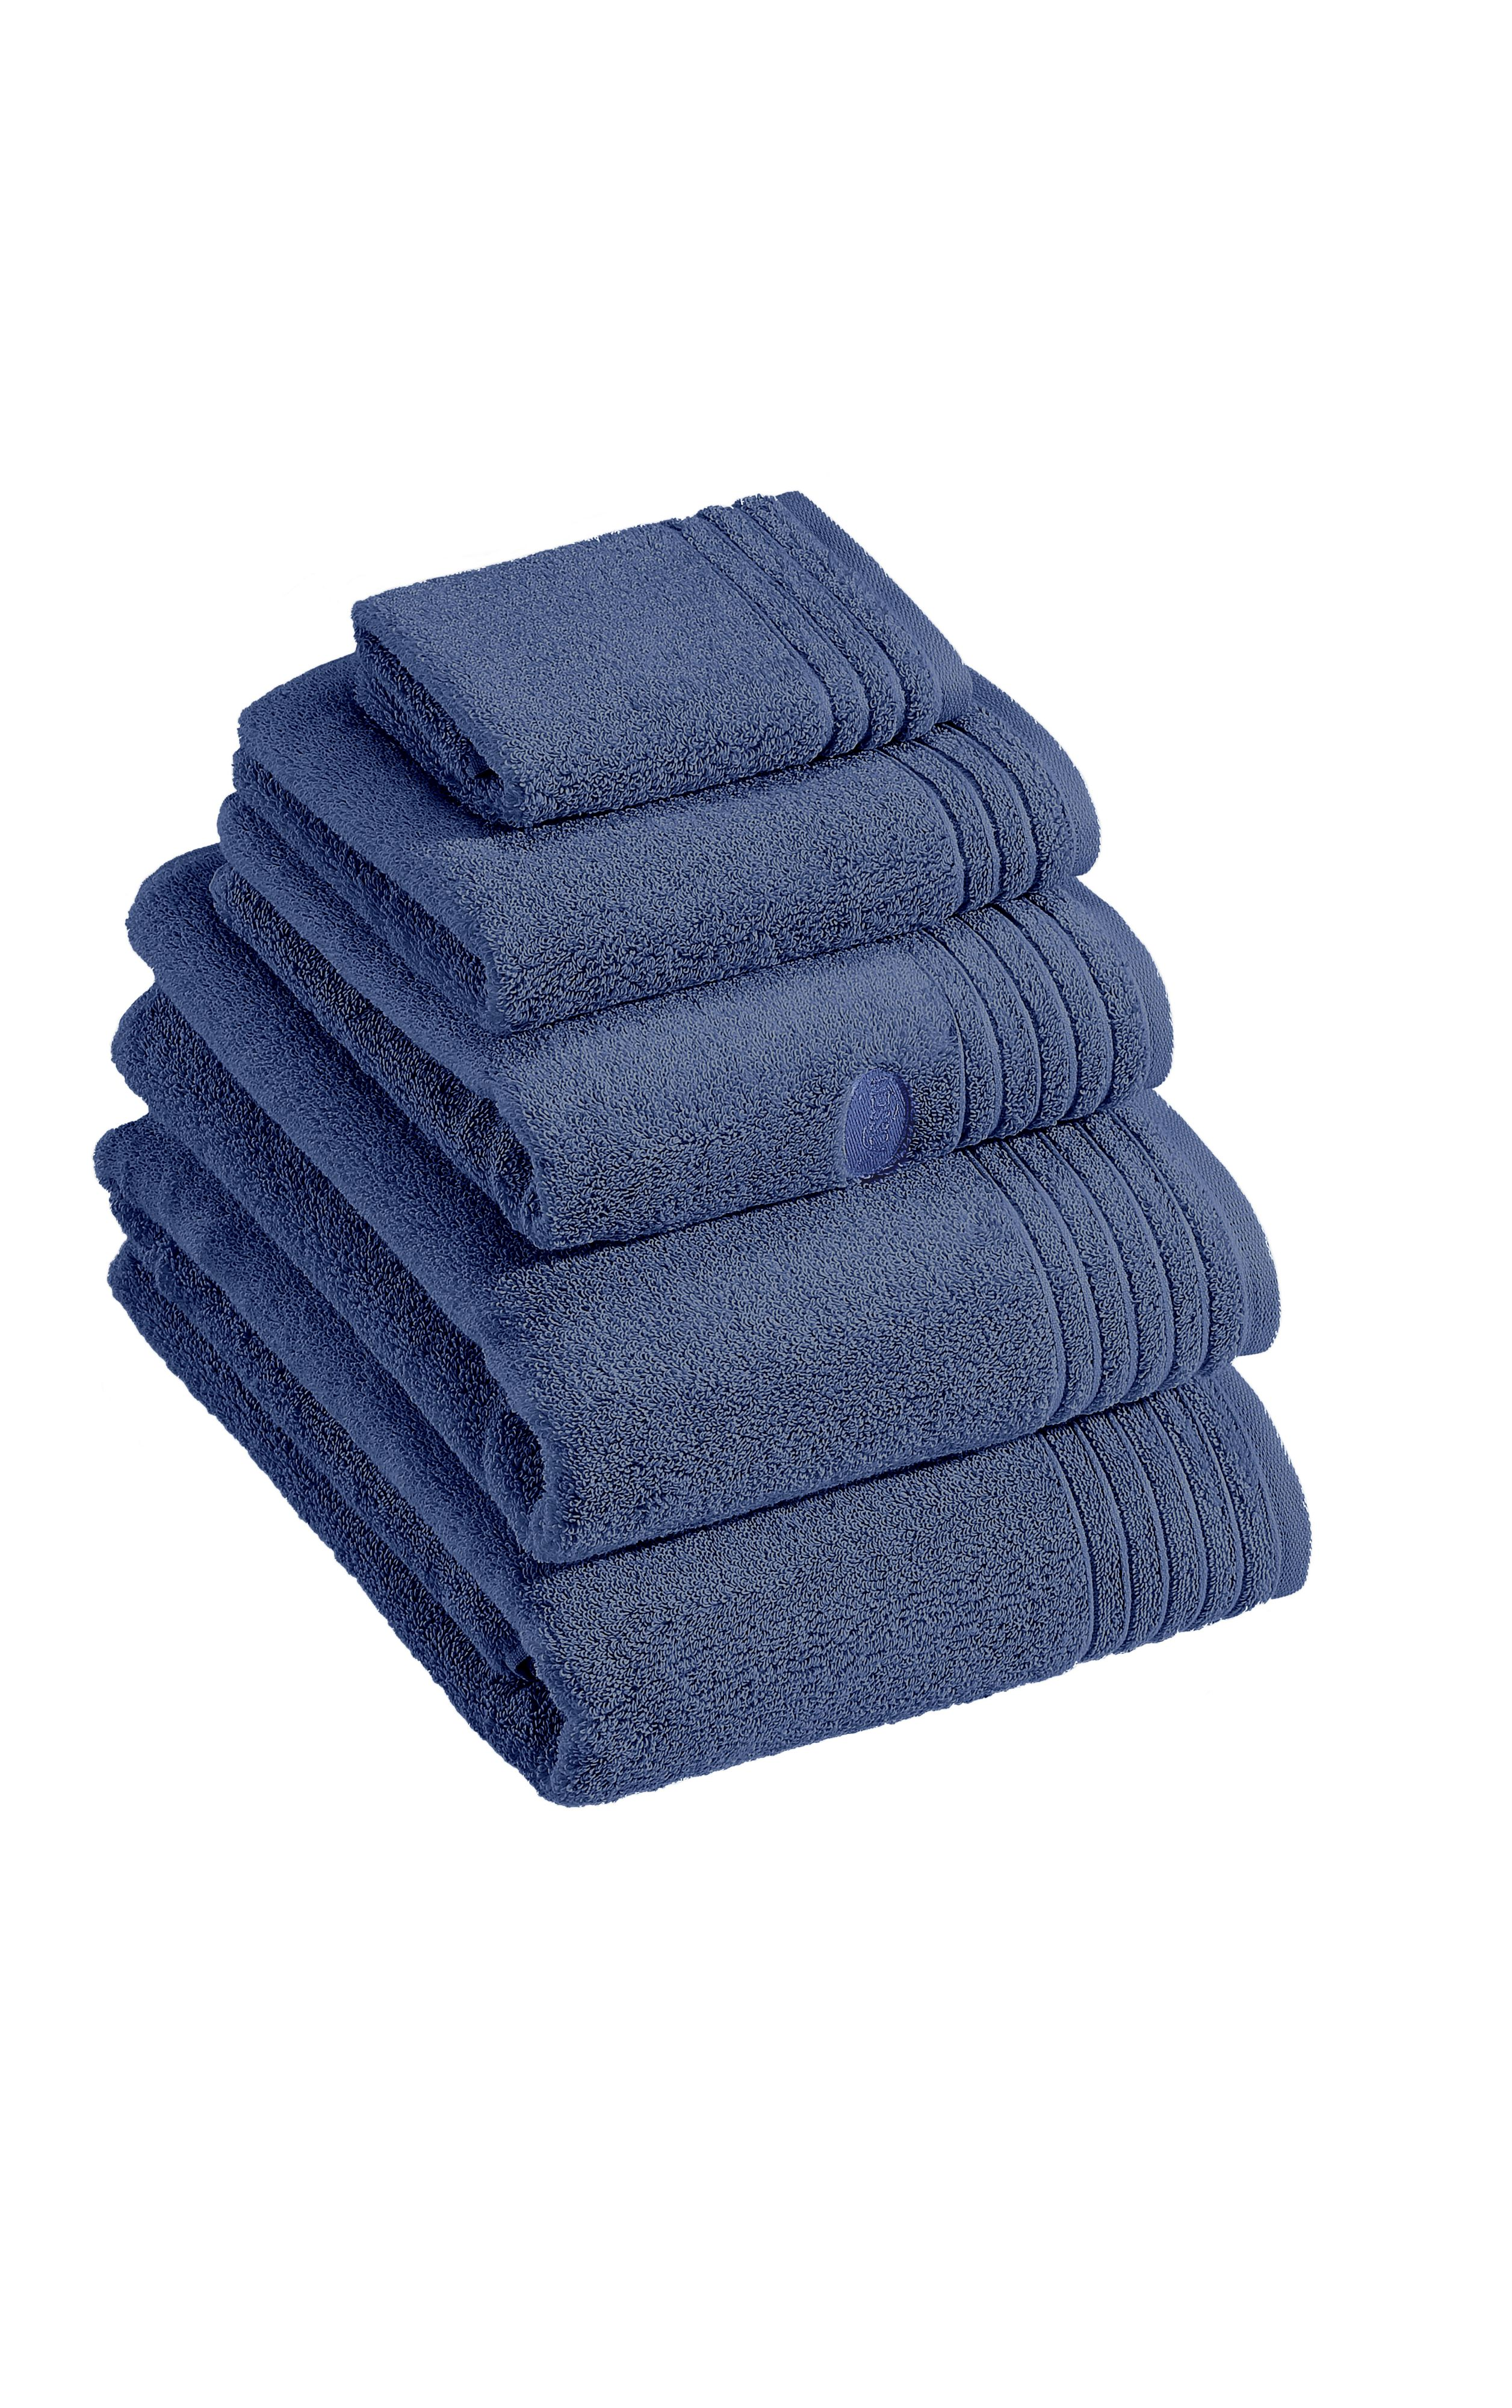 Dreams towel range in winter night